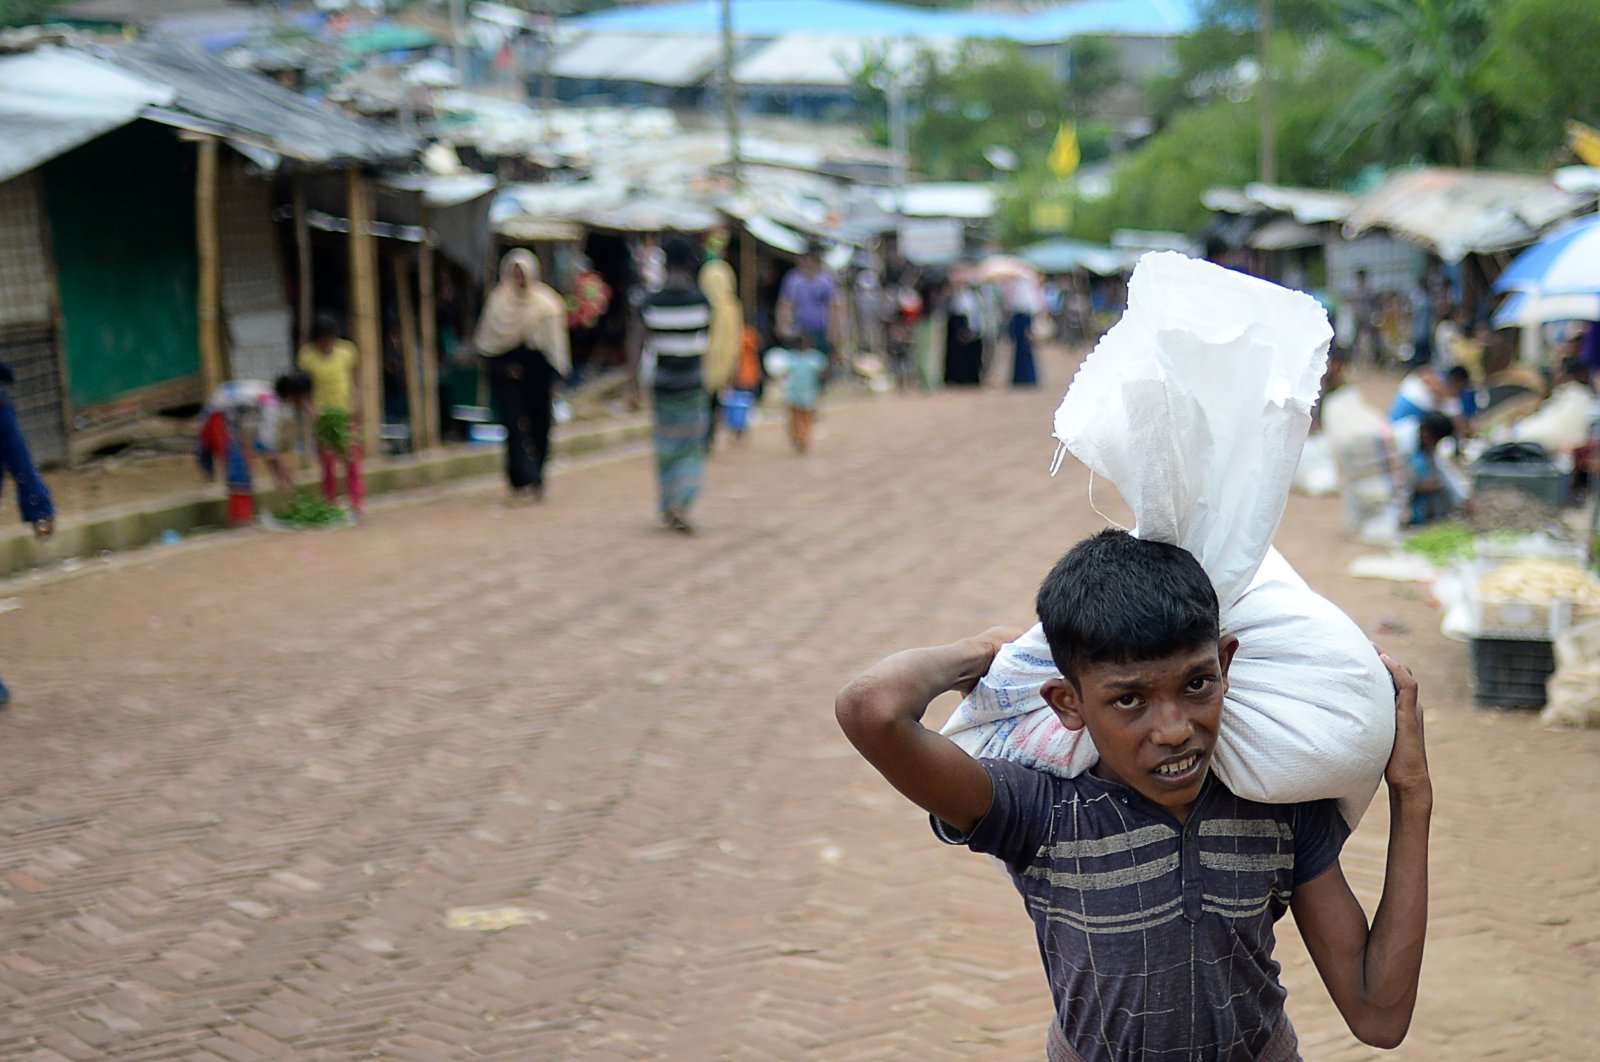 A Rohingya refugee youth carries relief materials at Kutupalong refugee camp, in Ukhia, Bangladesh, Oct. 6, 2020. (AFP Photo)